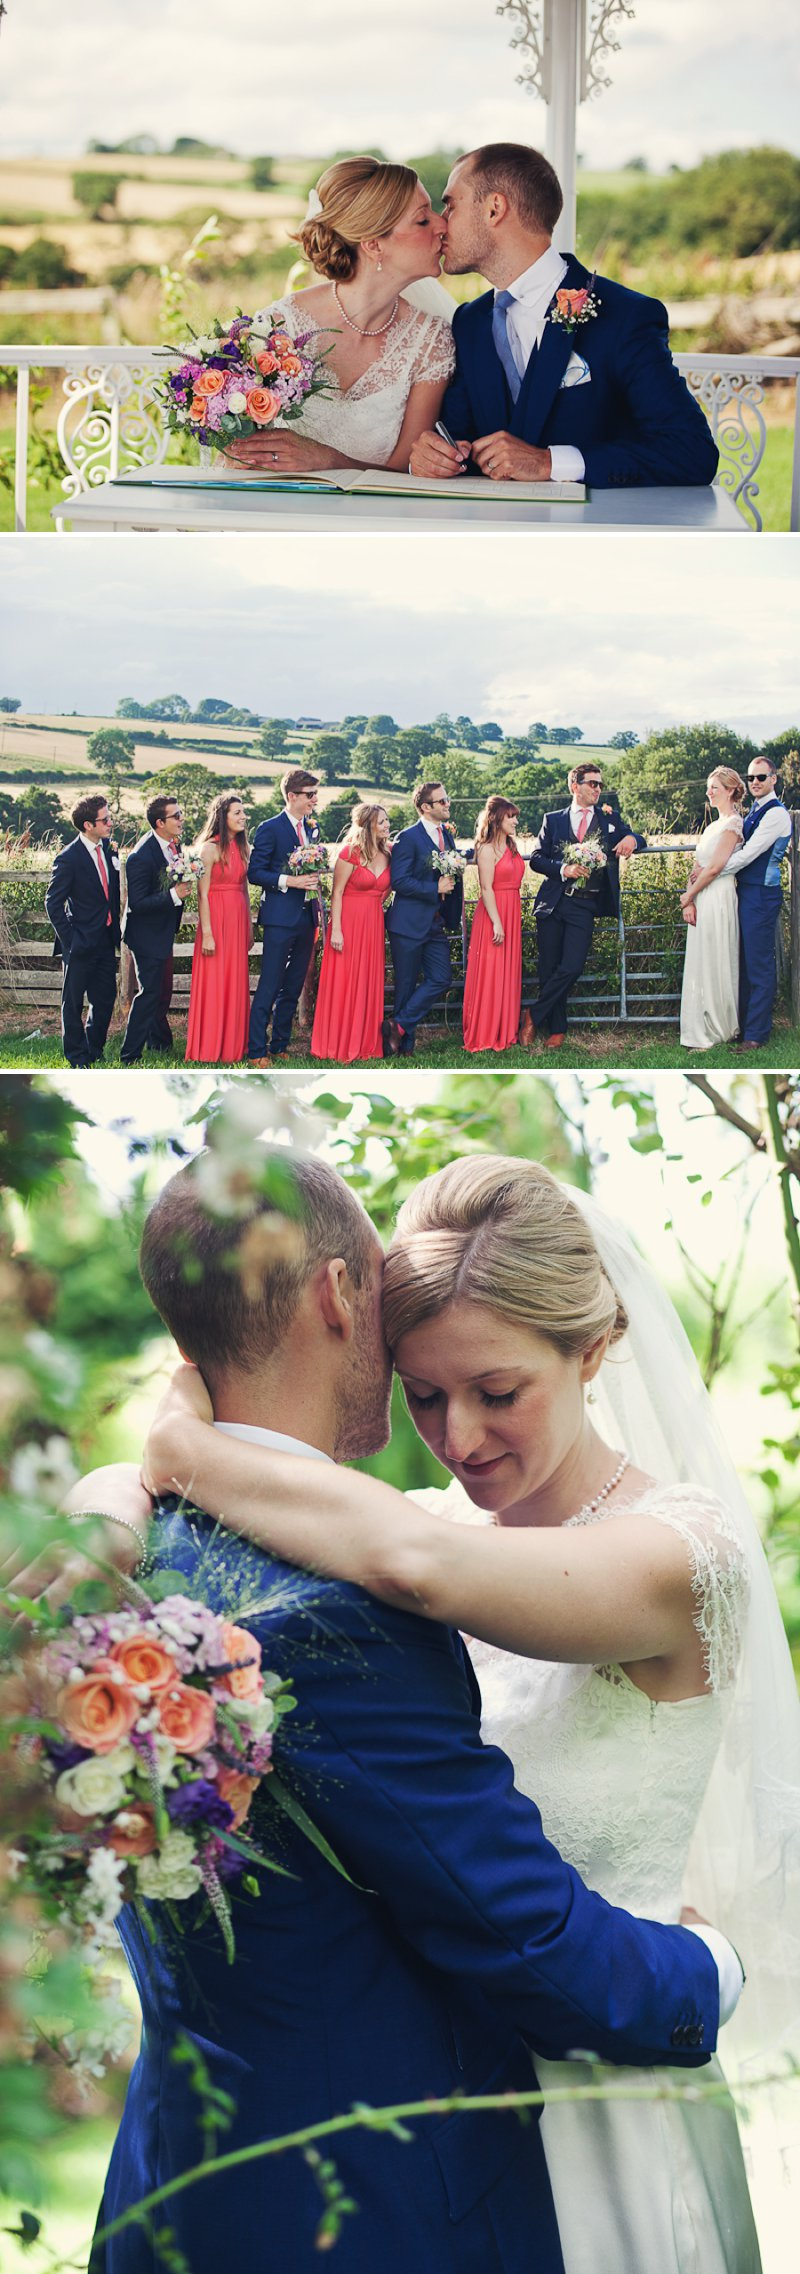 Great Gatsby Inspired Wedding At Shottle Hall In Derbyshire With Bride In Bespoke Gown by Susie Stone And Groom In Bespoke Suit By Cad And The Dandy 1 Gatsby Glam In The Derbyshire Dales.